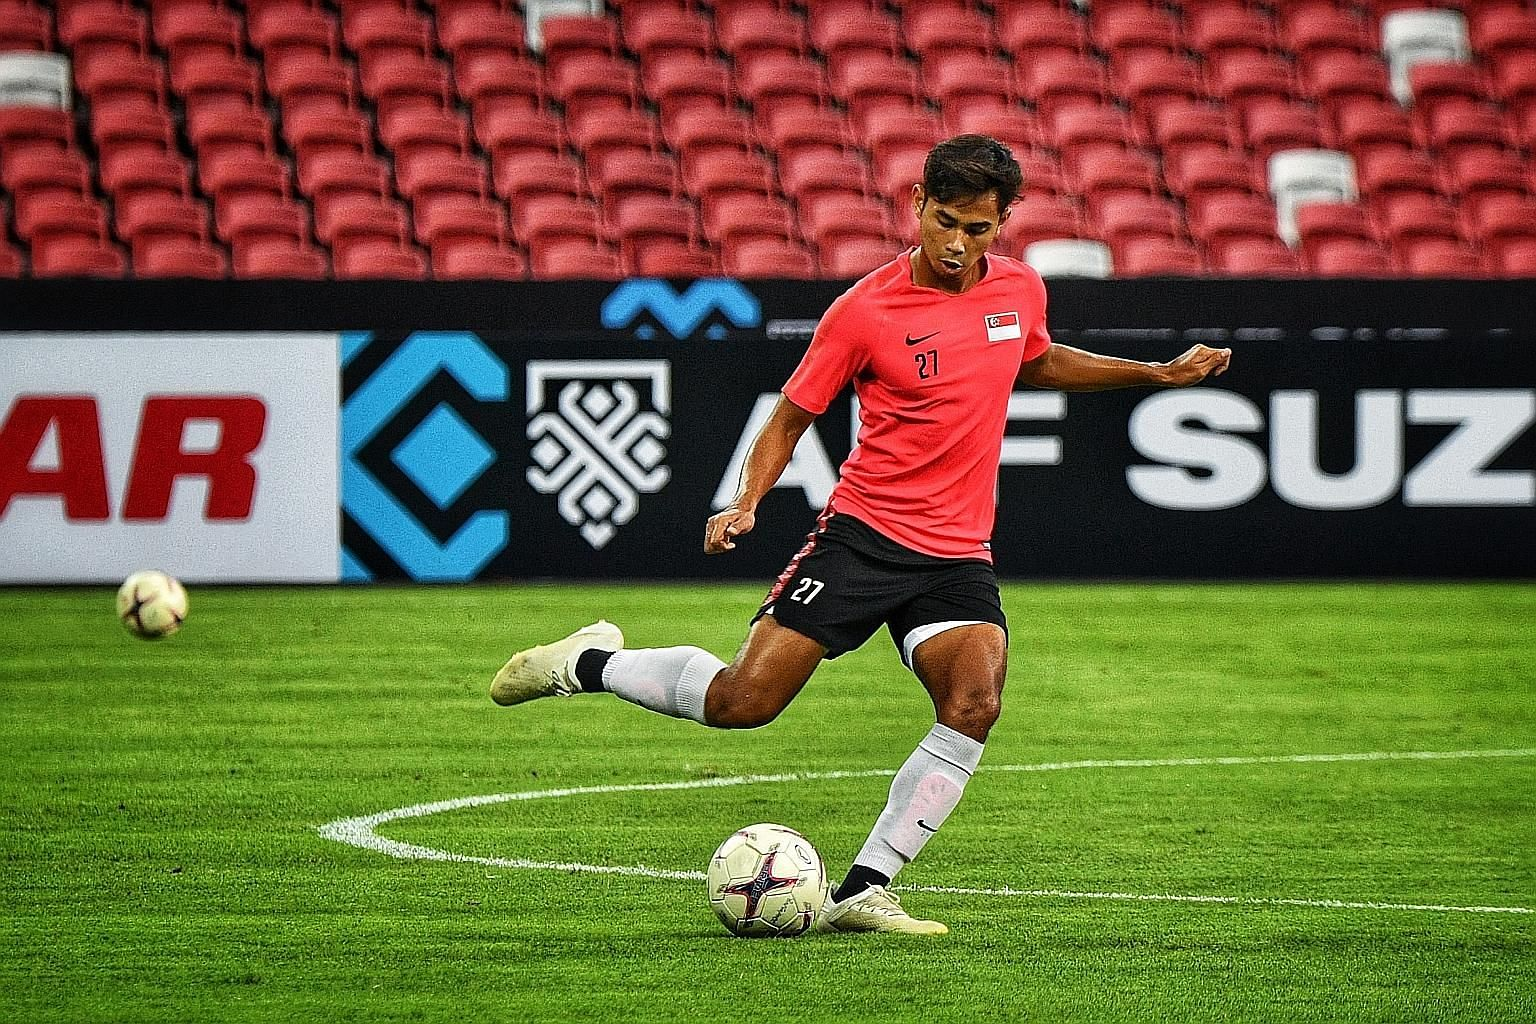 Forward Adam Swandi, 22, has improved in his one year at Albirex Niigata and was named the SPL Young Player of the Year.